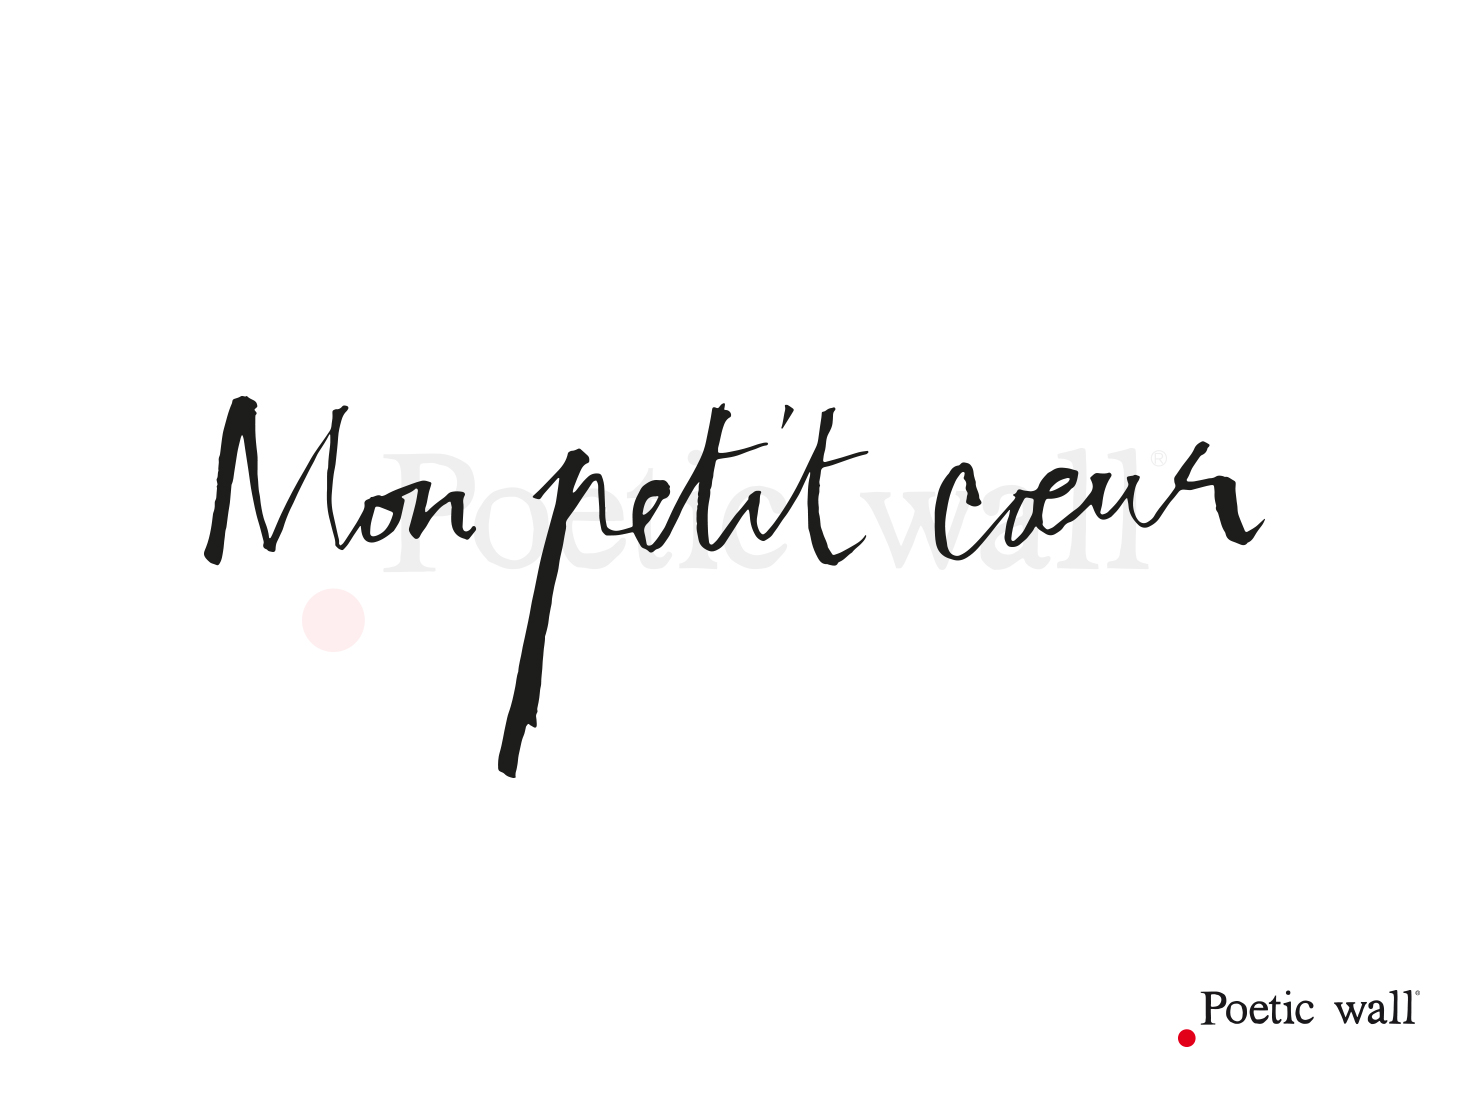 stickers-poeticwall-mon-petit-coeur2